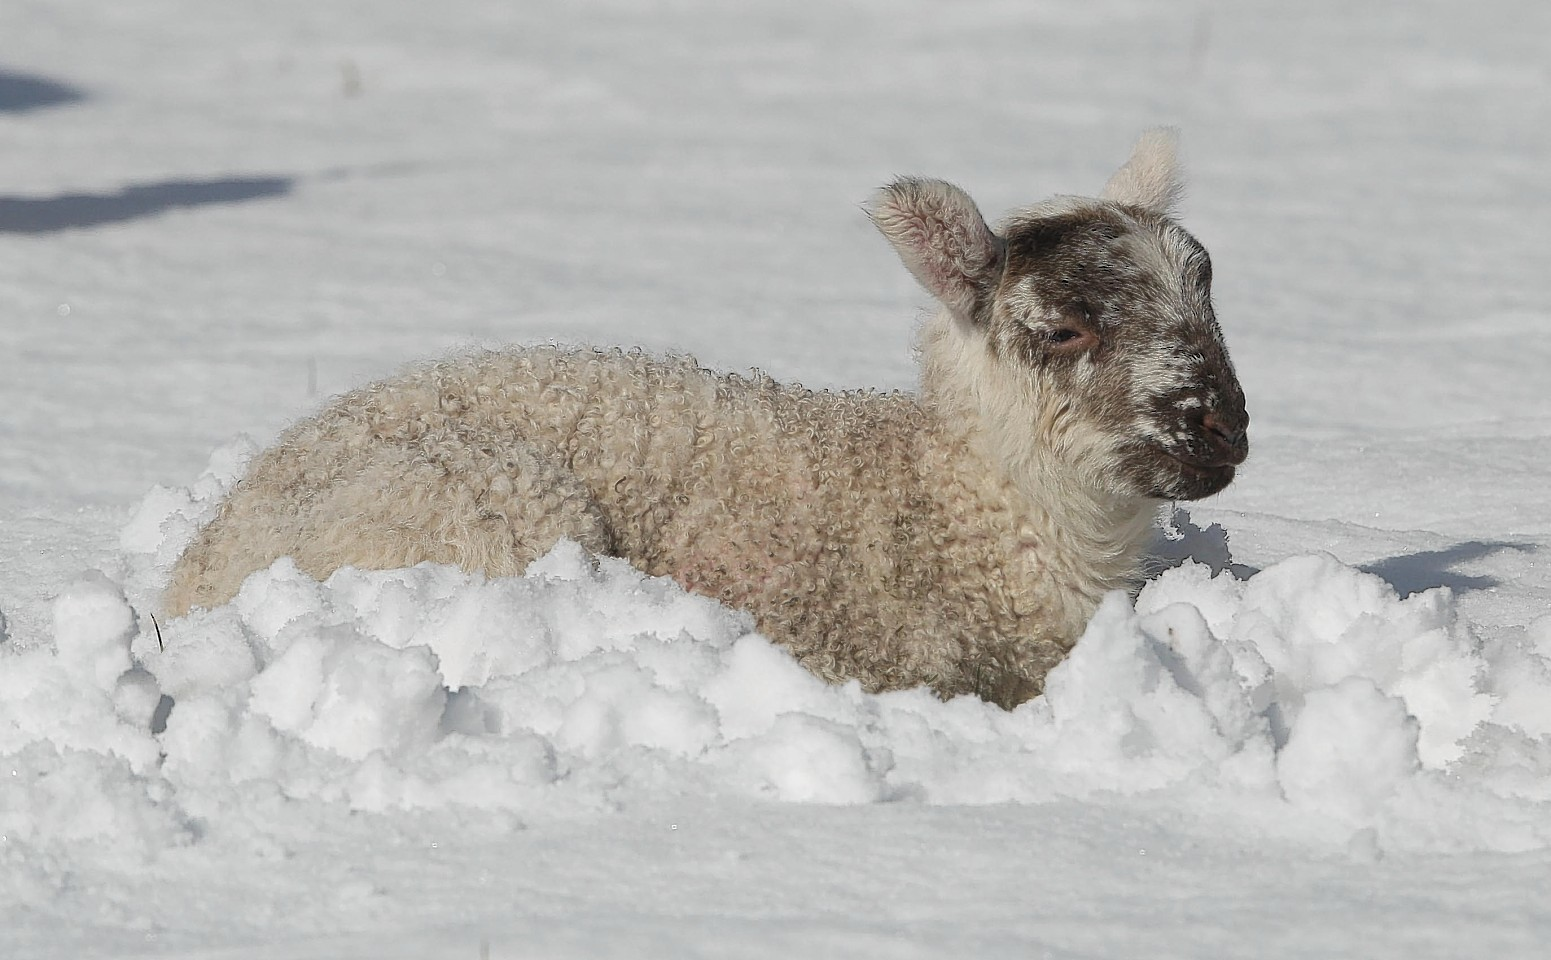 A lamb in the snow at a farm near Inverness. Photo by Peter Jolly